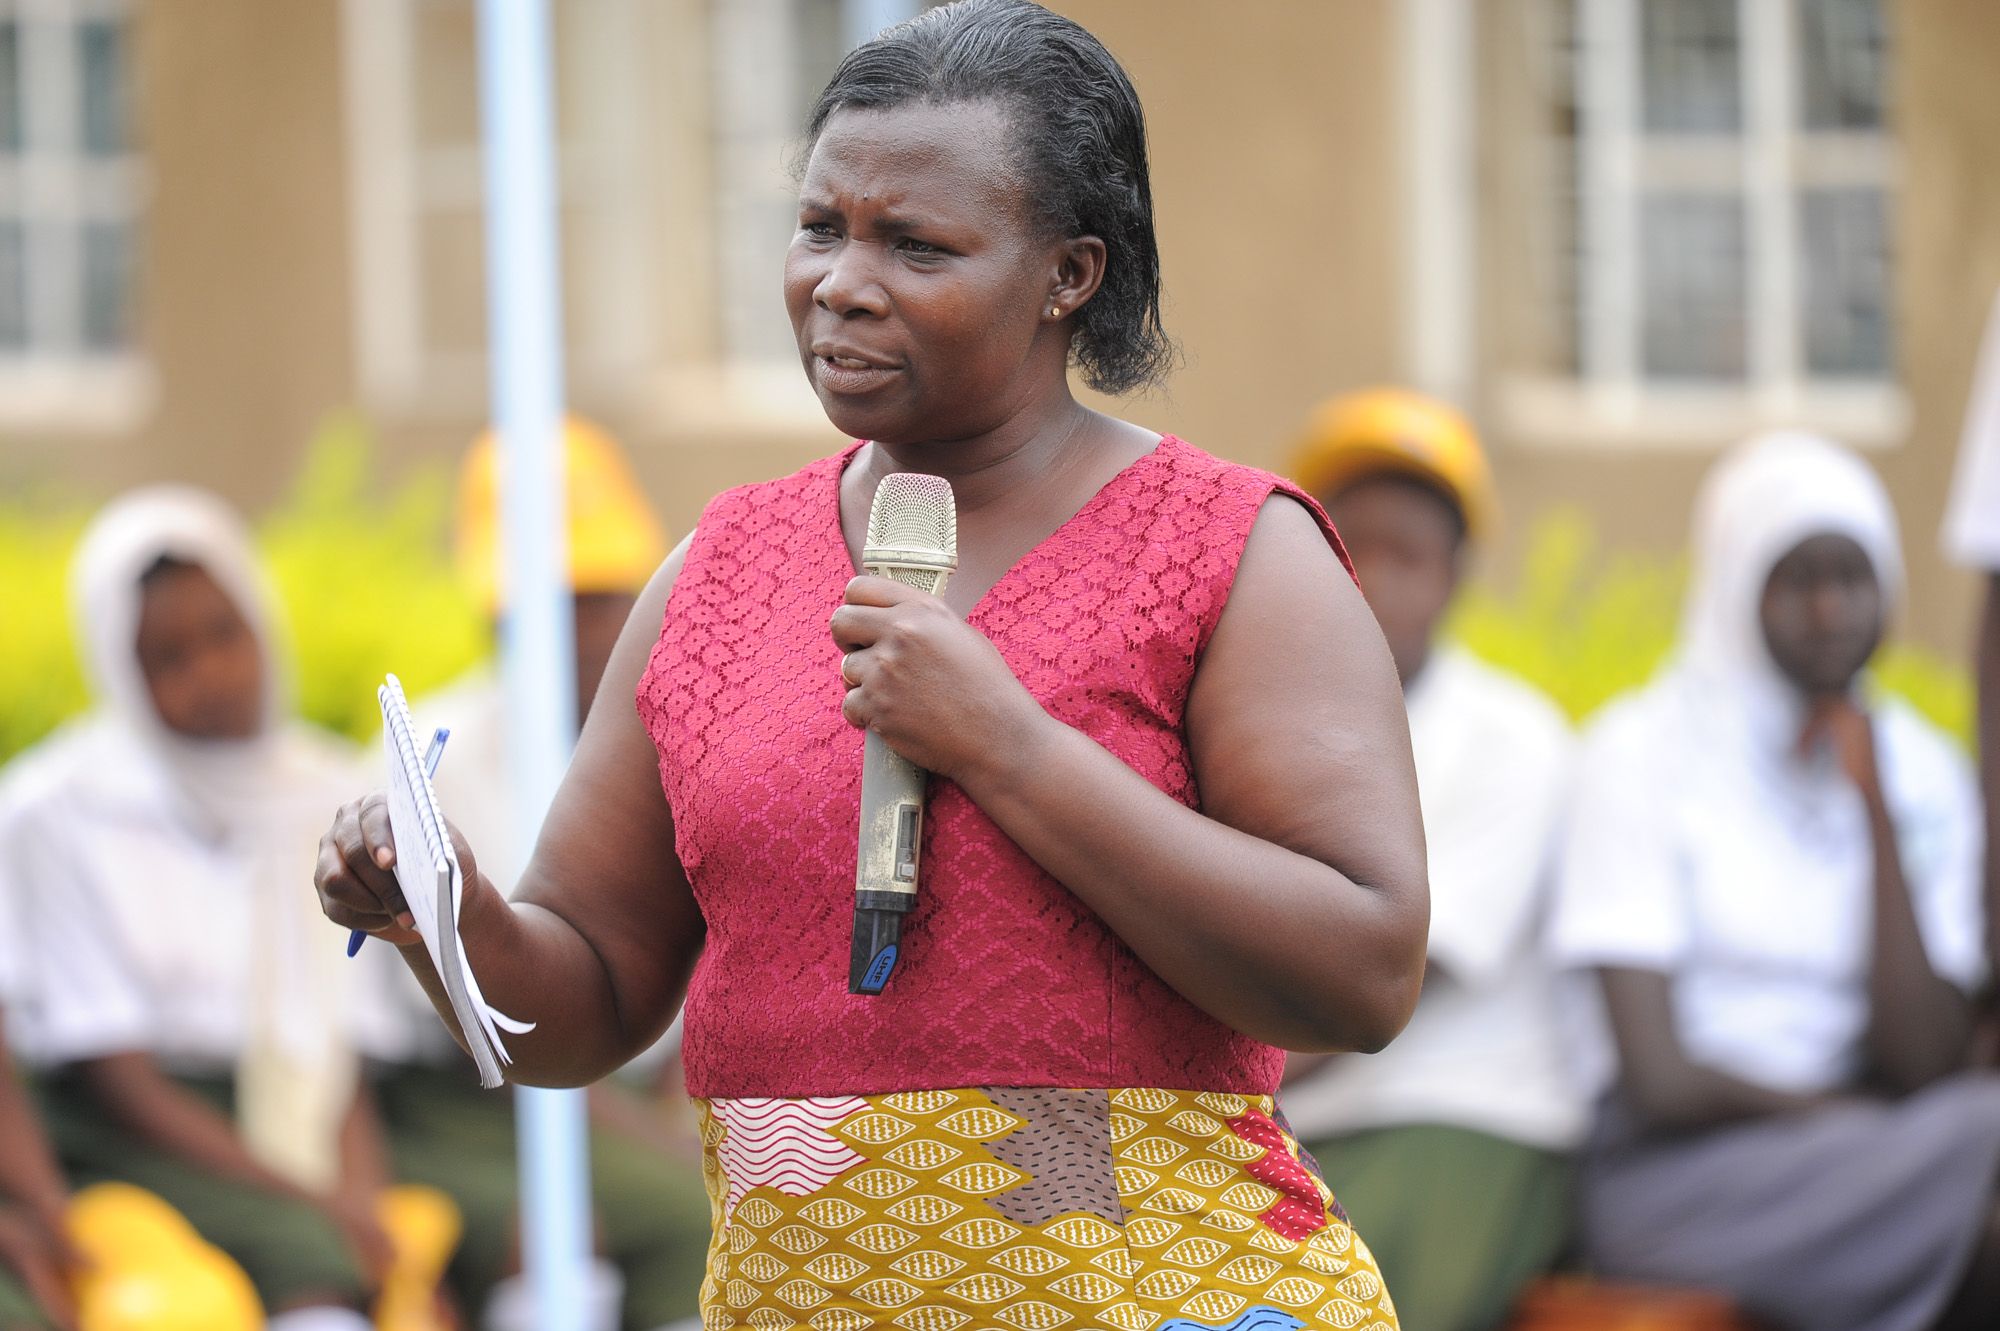 Arua District Health Commission's Medicines and Supplies Inventory Manager, Dr. Margaret Bayoru addresses the Oriajin Community at the handover of the hospital equipment.